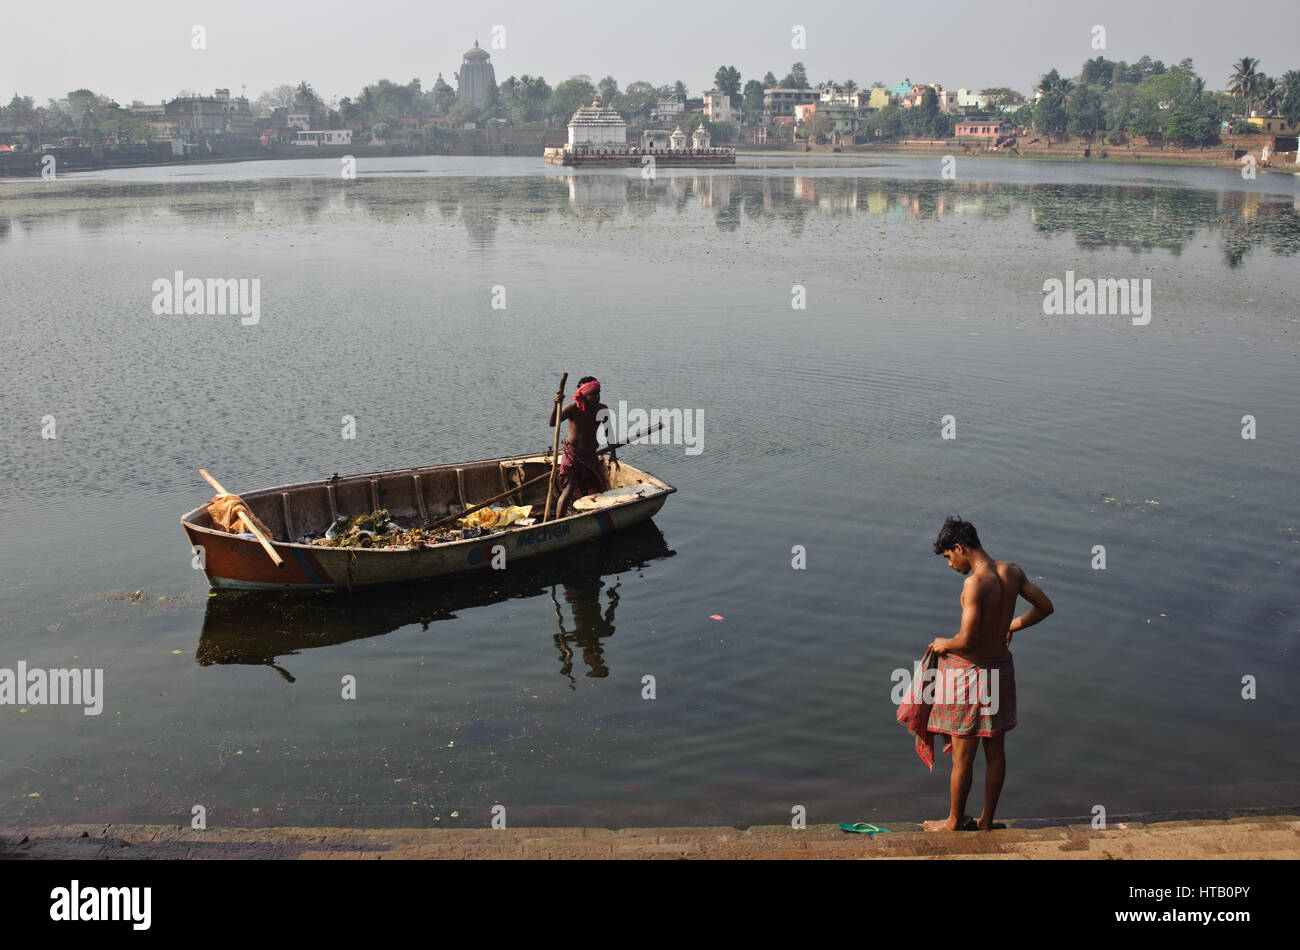 Cleaning up the lake 'bindu sagar' + young man ready to bathe in the lake ( India) In the background, the - Stock Image